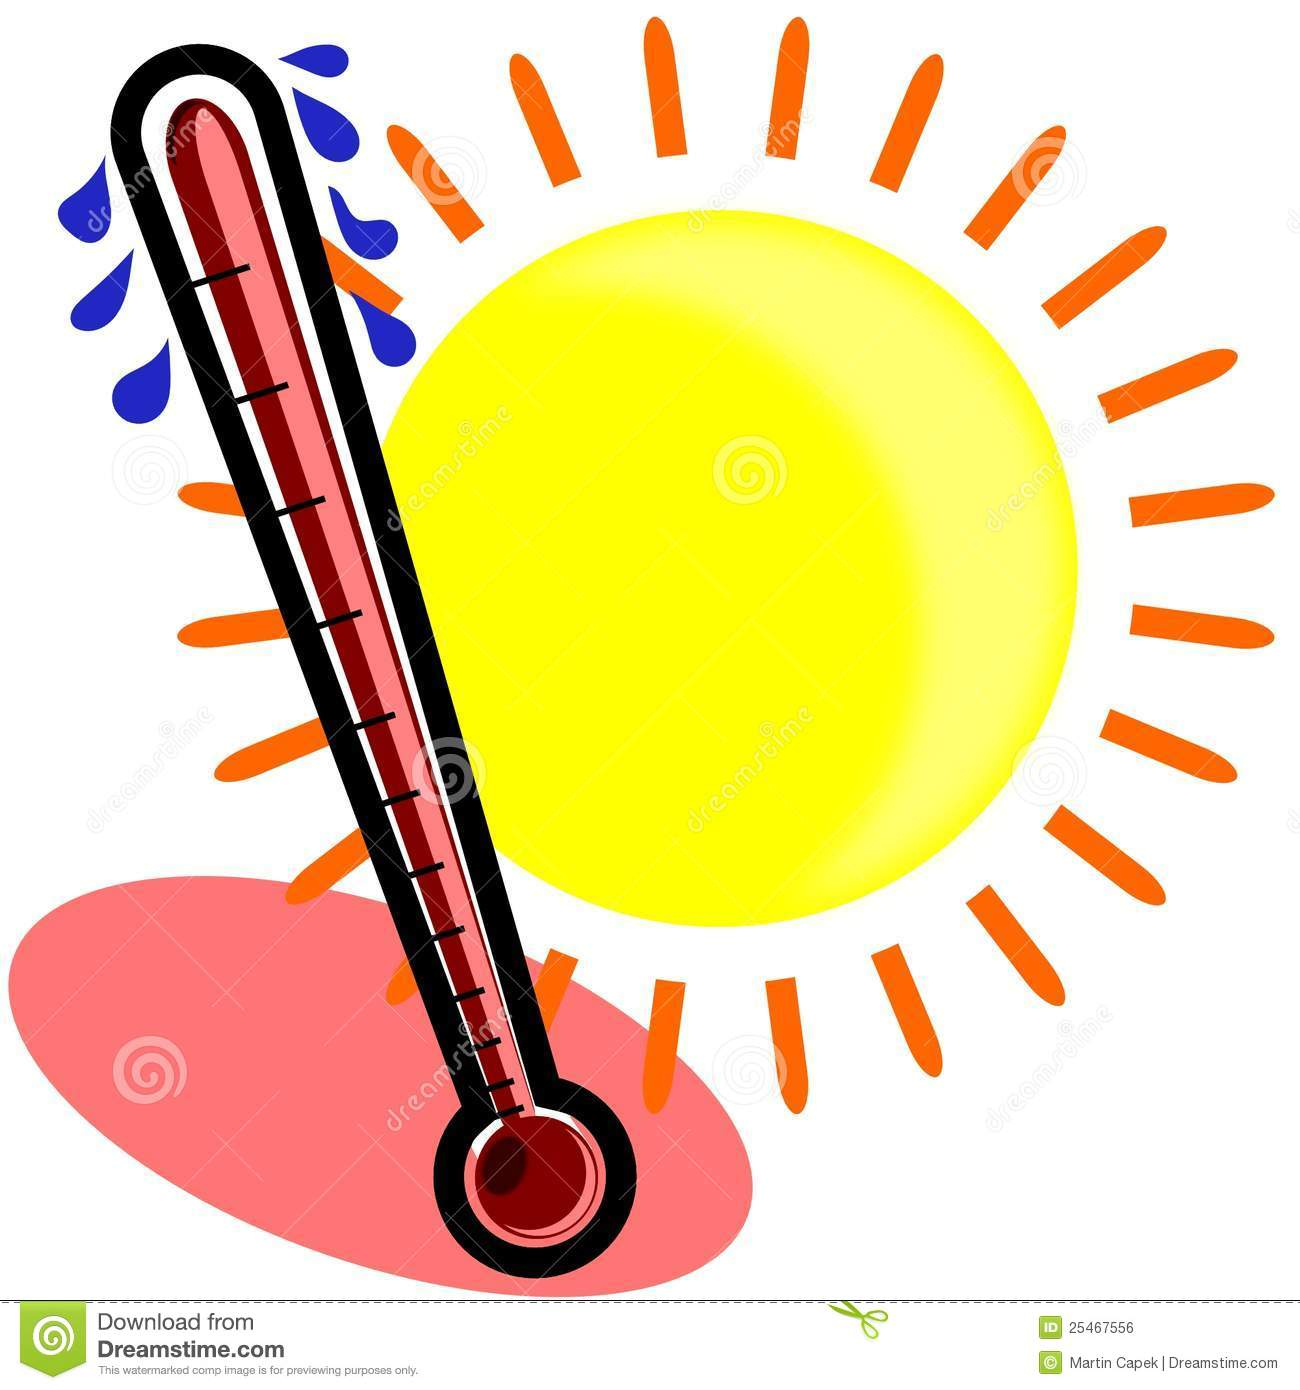 Warm Temperature Clipart